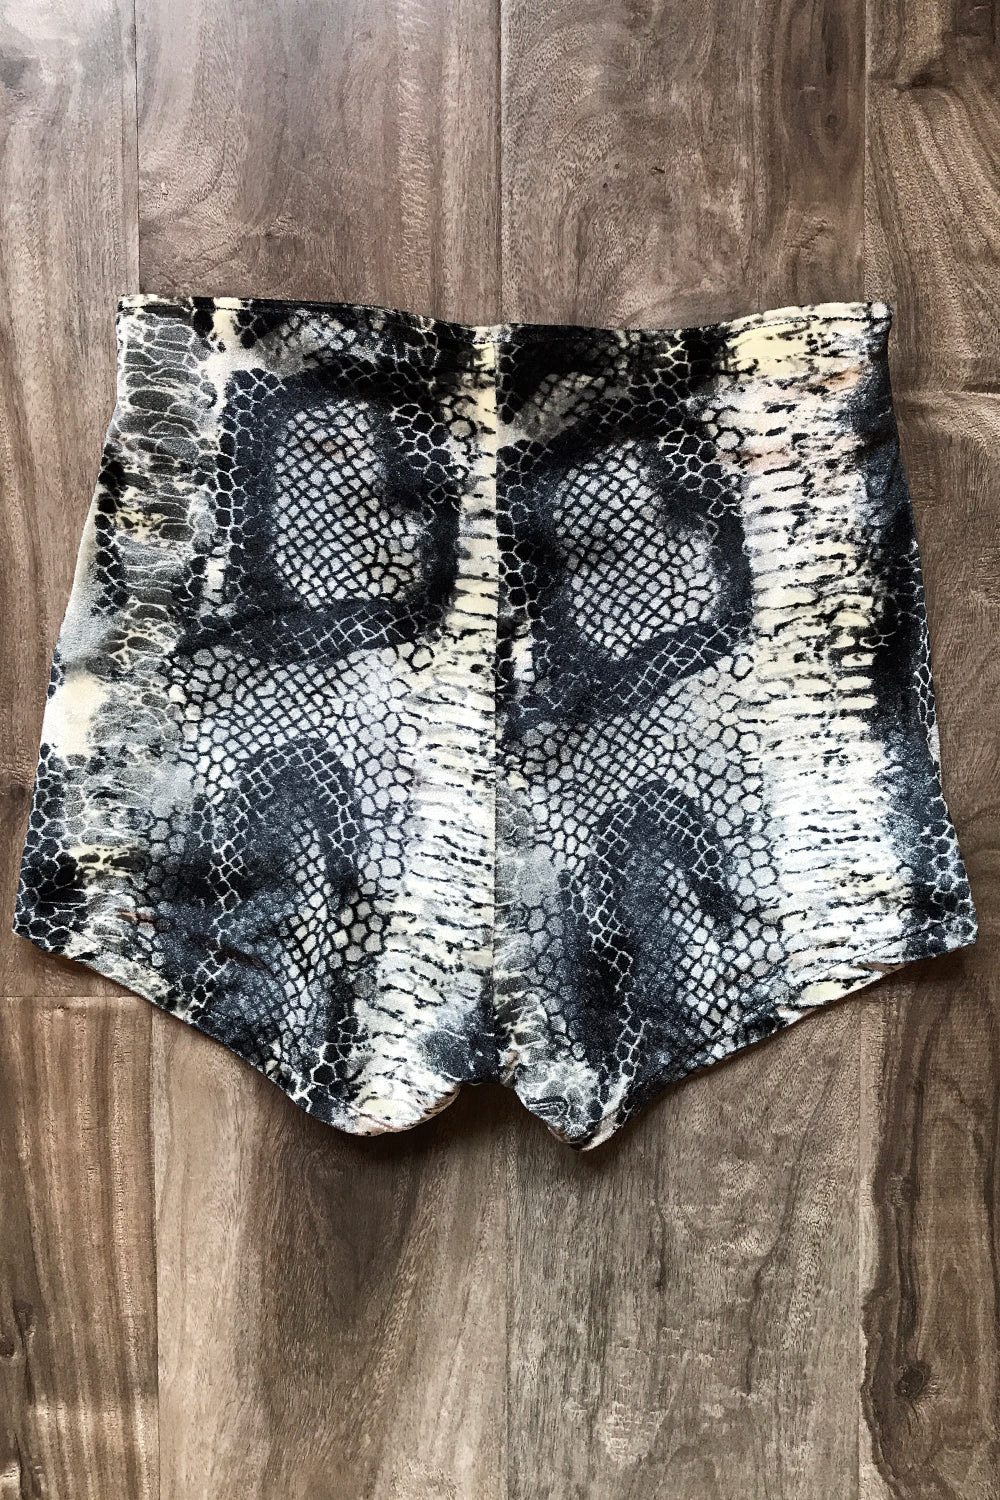 Velvet Grommet Shorts・Grey Cobra, bottoms, BAD VIBES, BACKBITE